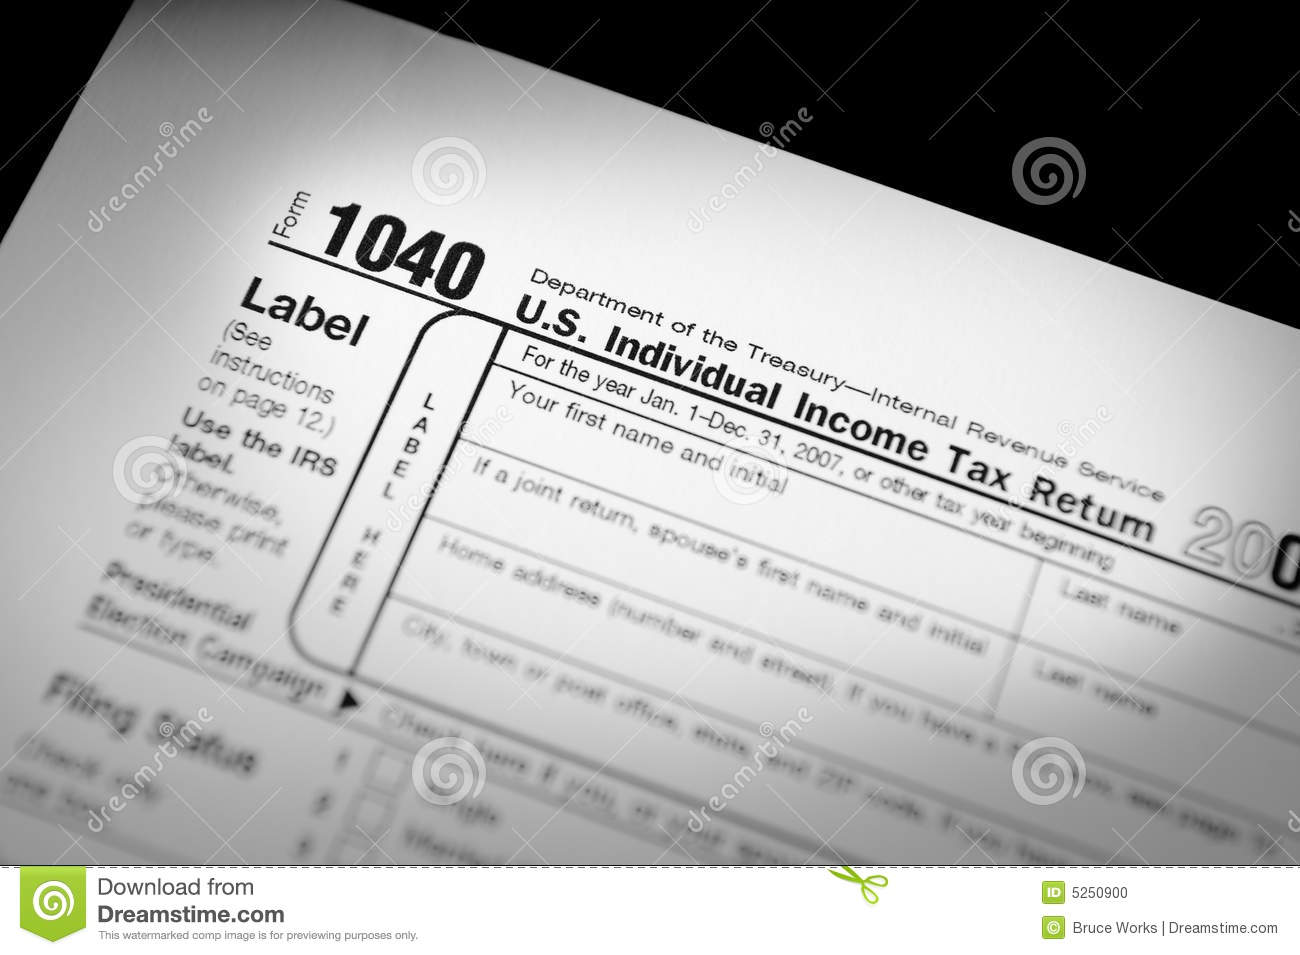 Irs form 1040 stock photo image of 1040 dependents revenue 5250900 irs form 1040 falaconquin